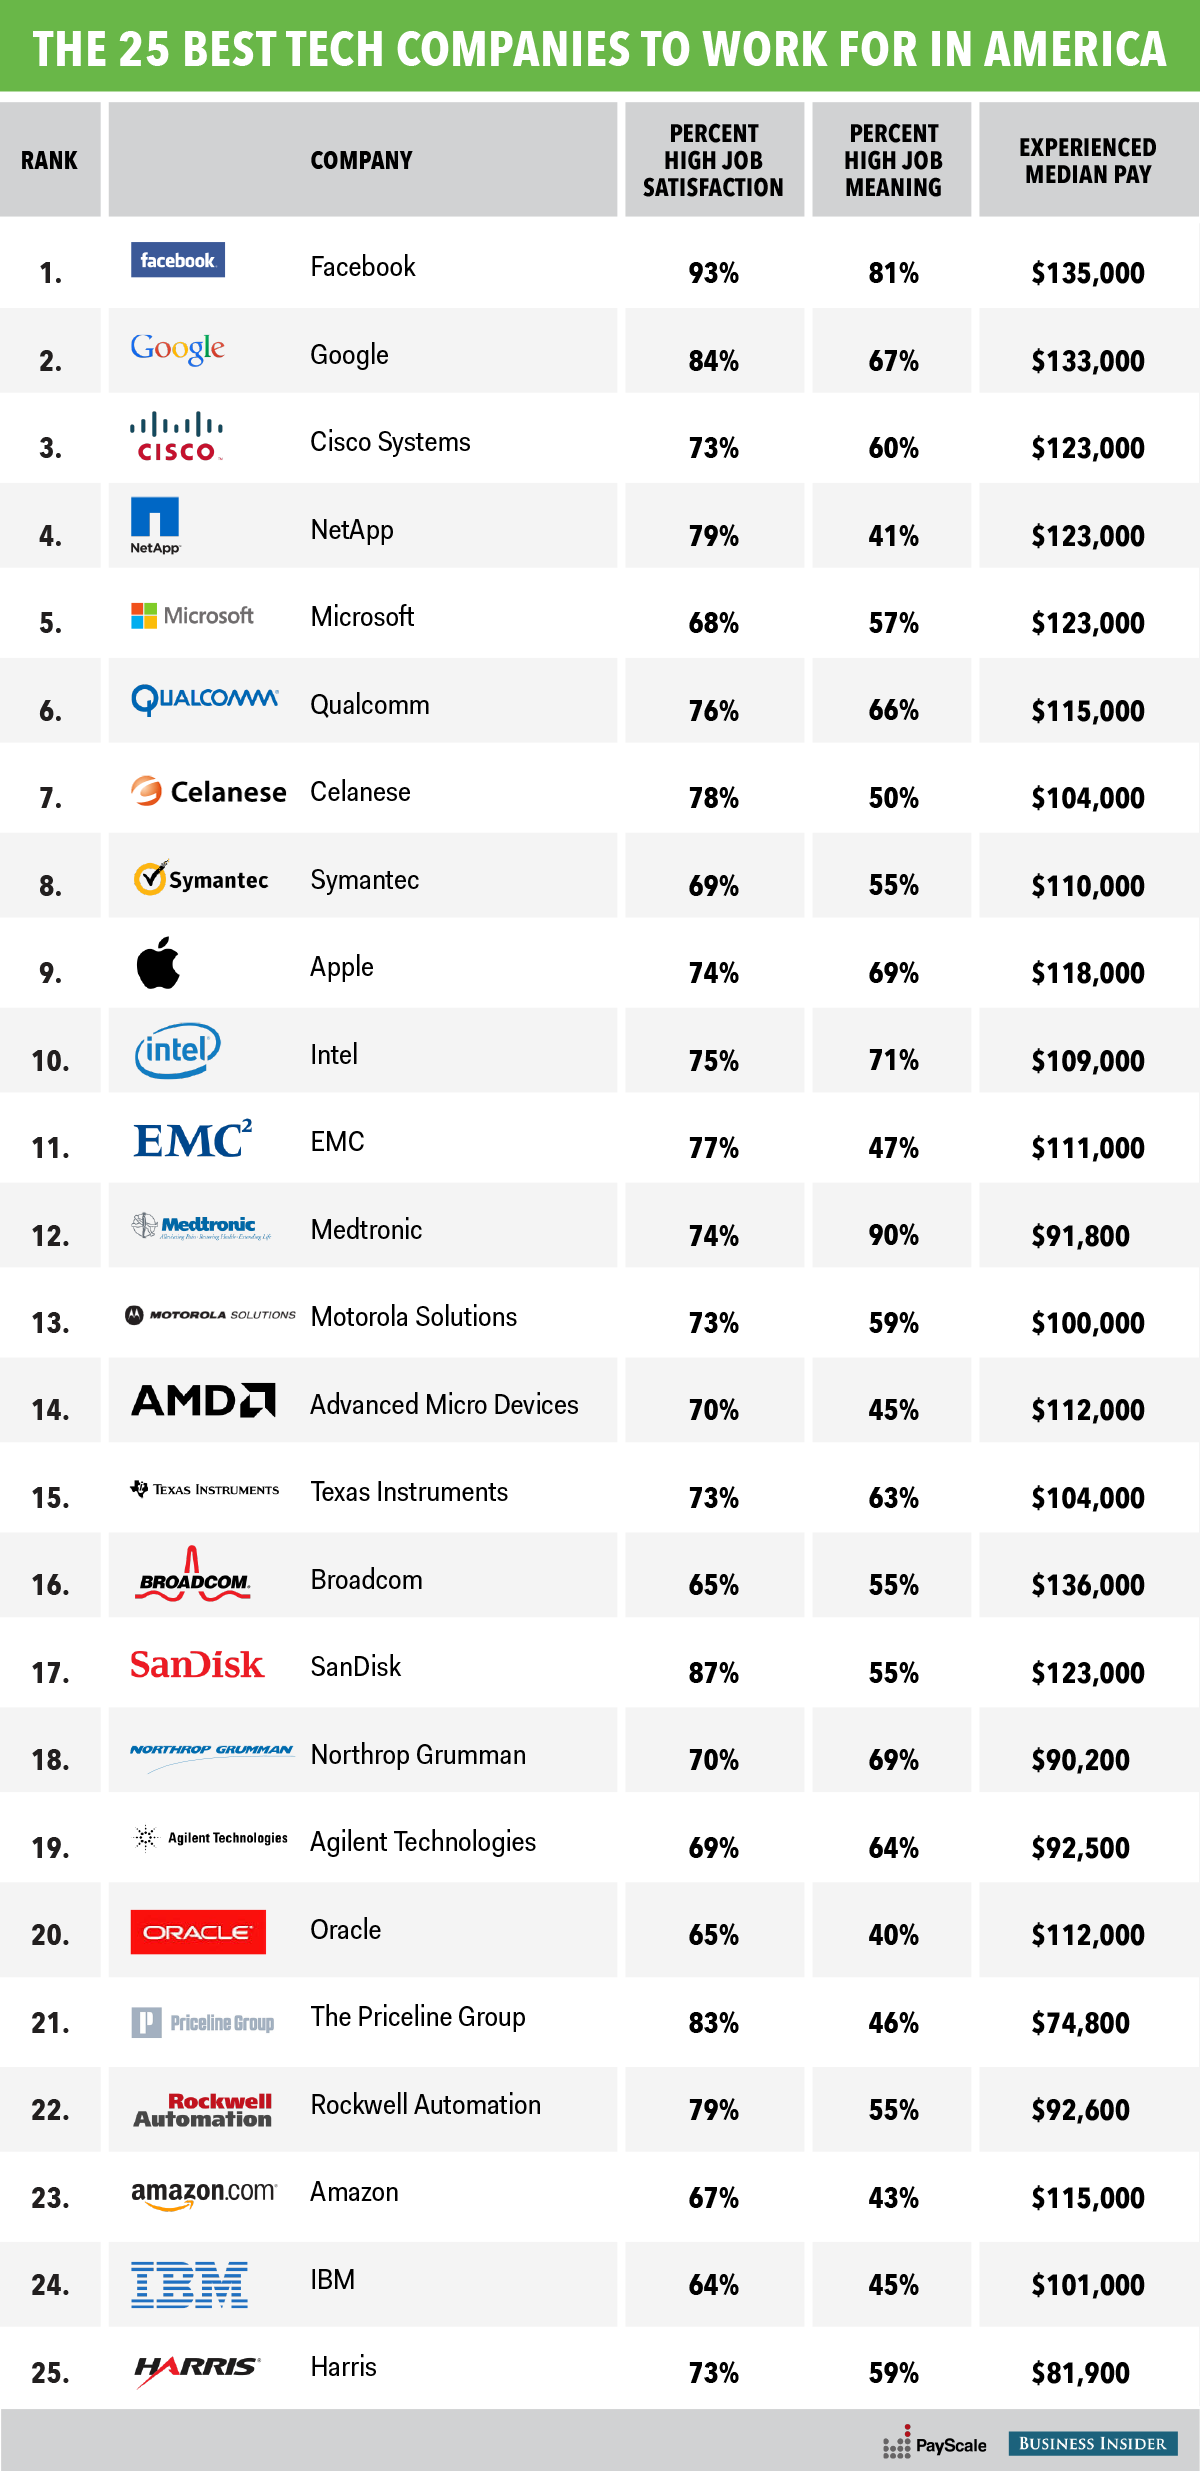 The 25 best tech companies to work for in America Energy